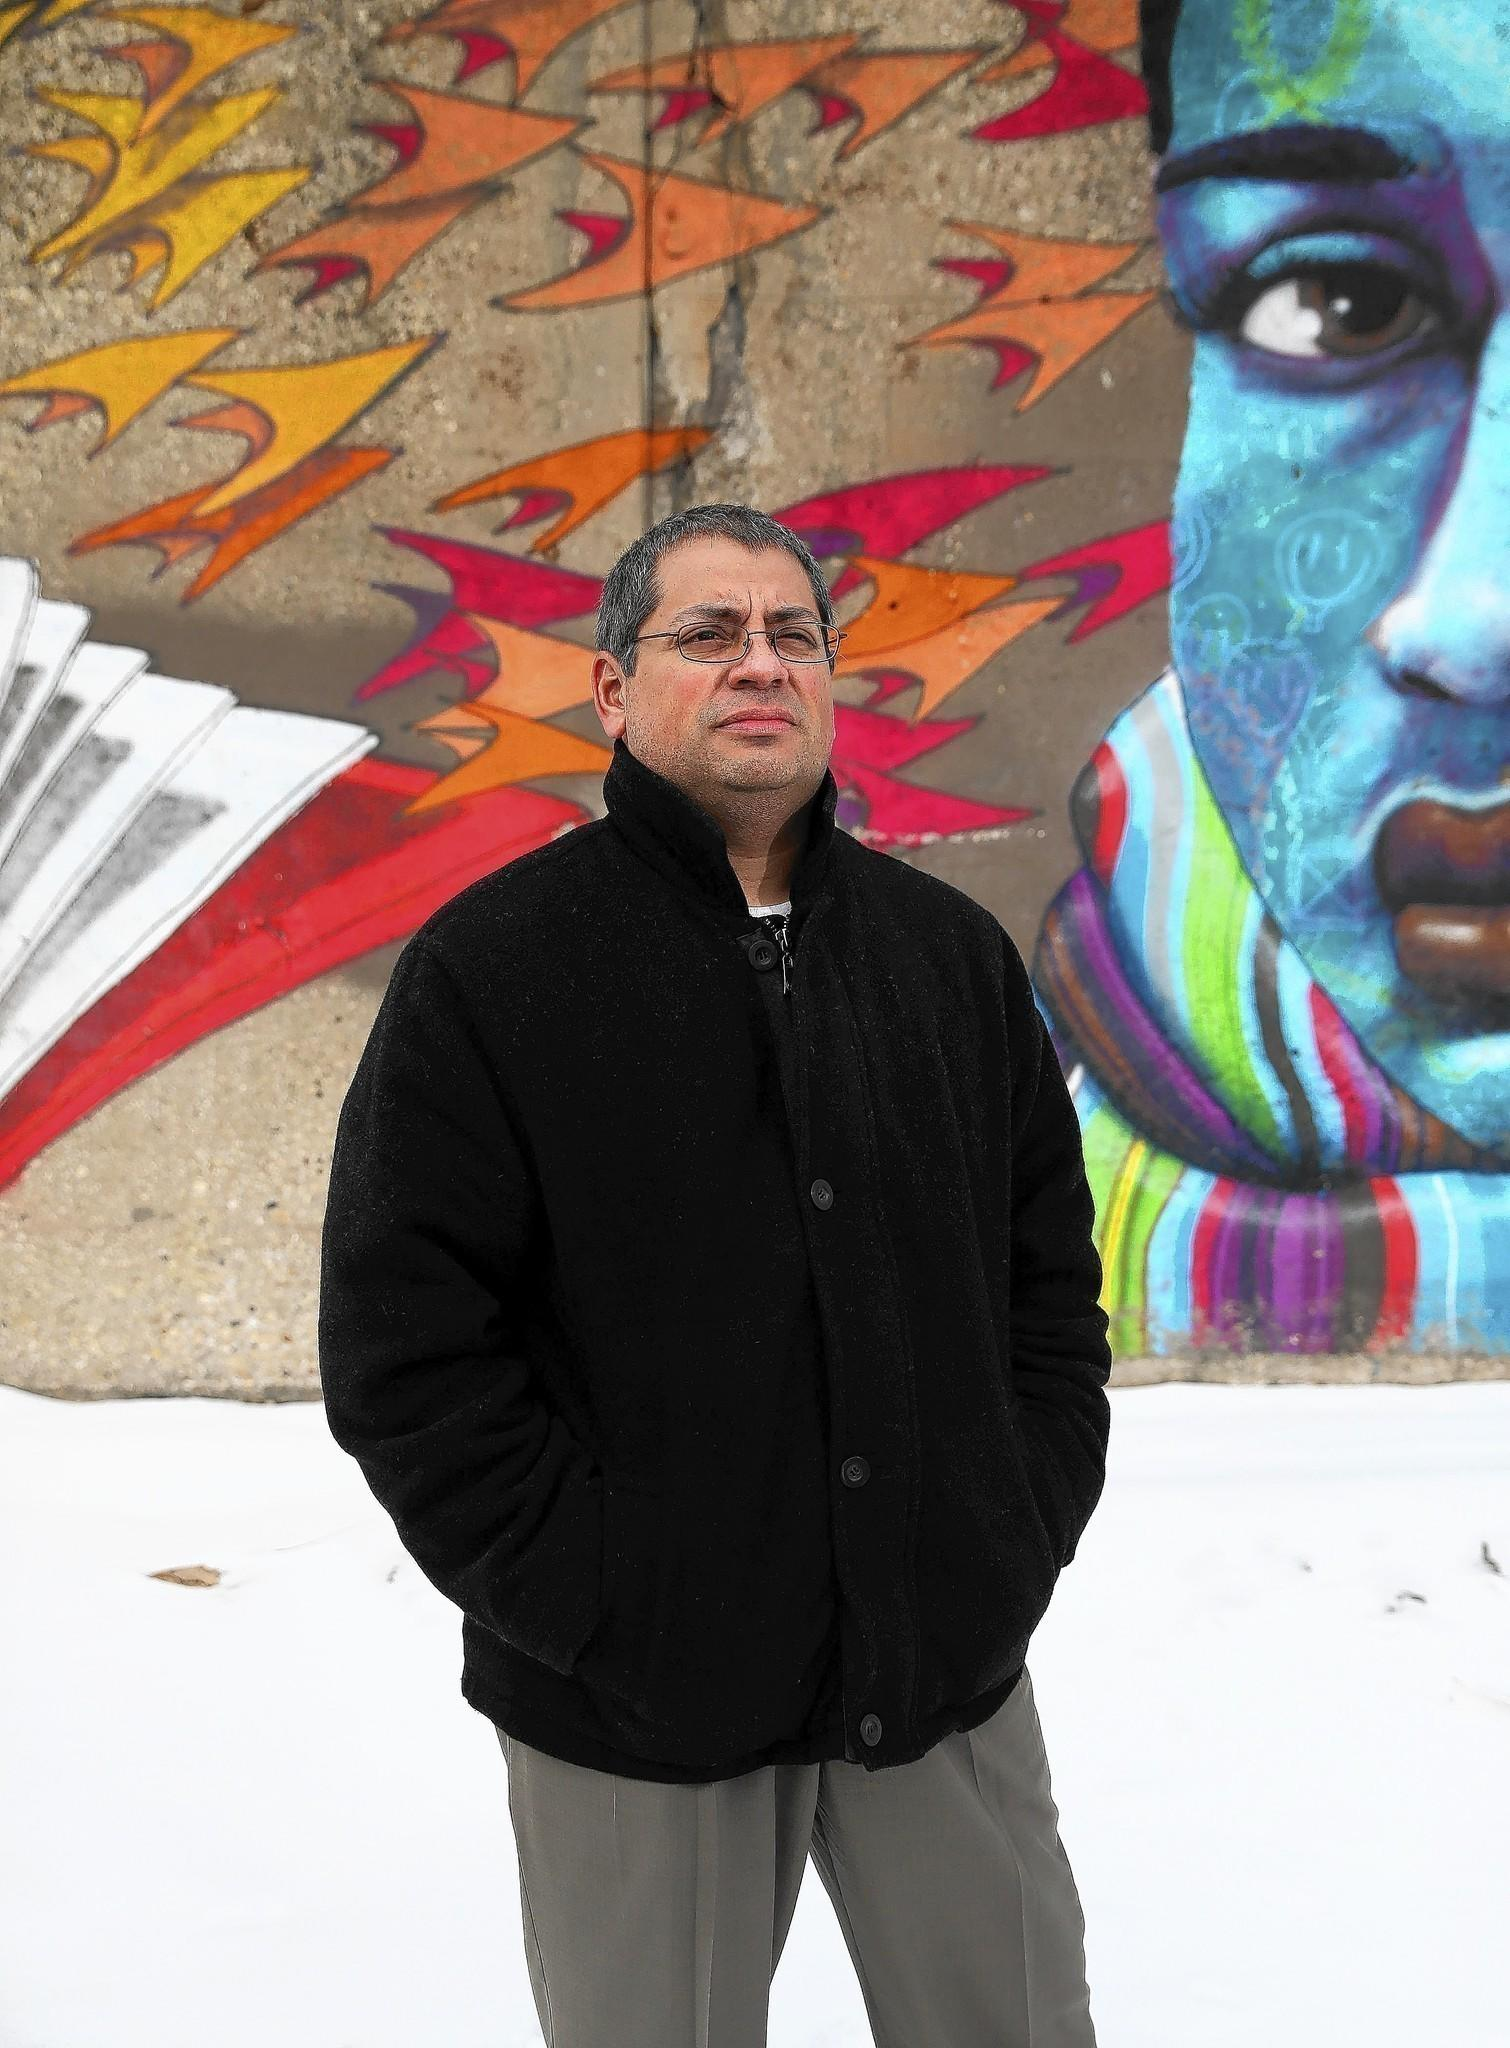 """""""Painted Cities"""" by Alexai Galaviz-Budziszewski is a collection of short stories that closely reflects the events, places and people from his early life in Chicago's Pilsen neighborhood."""